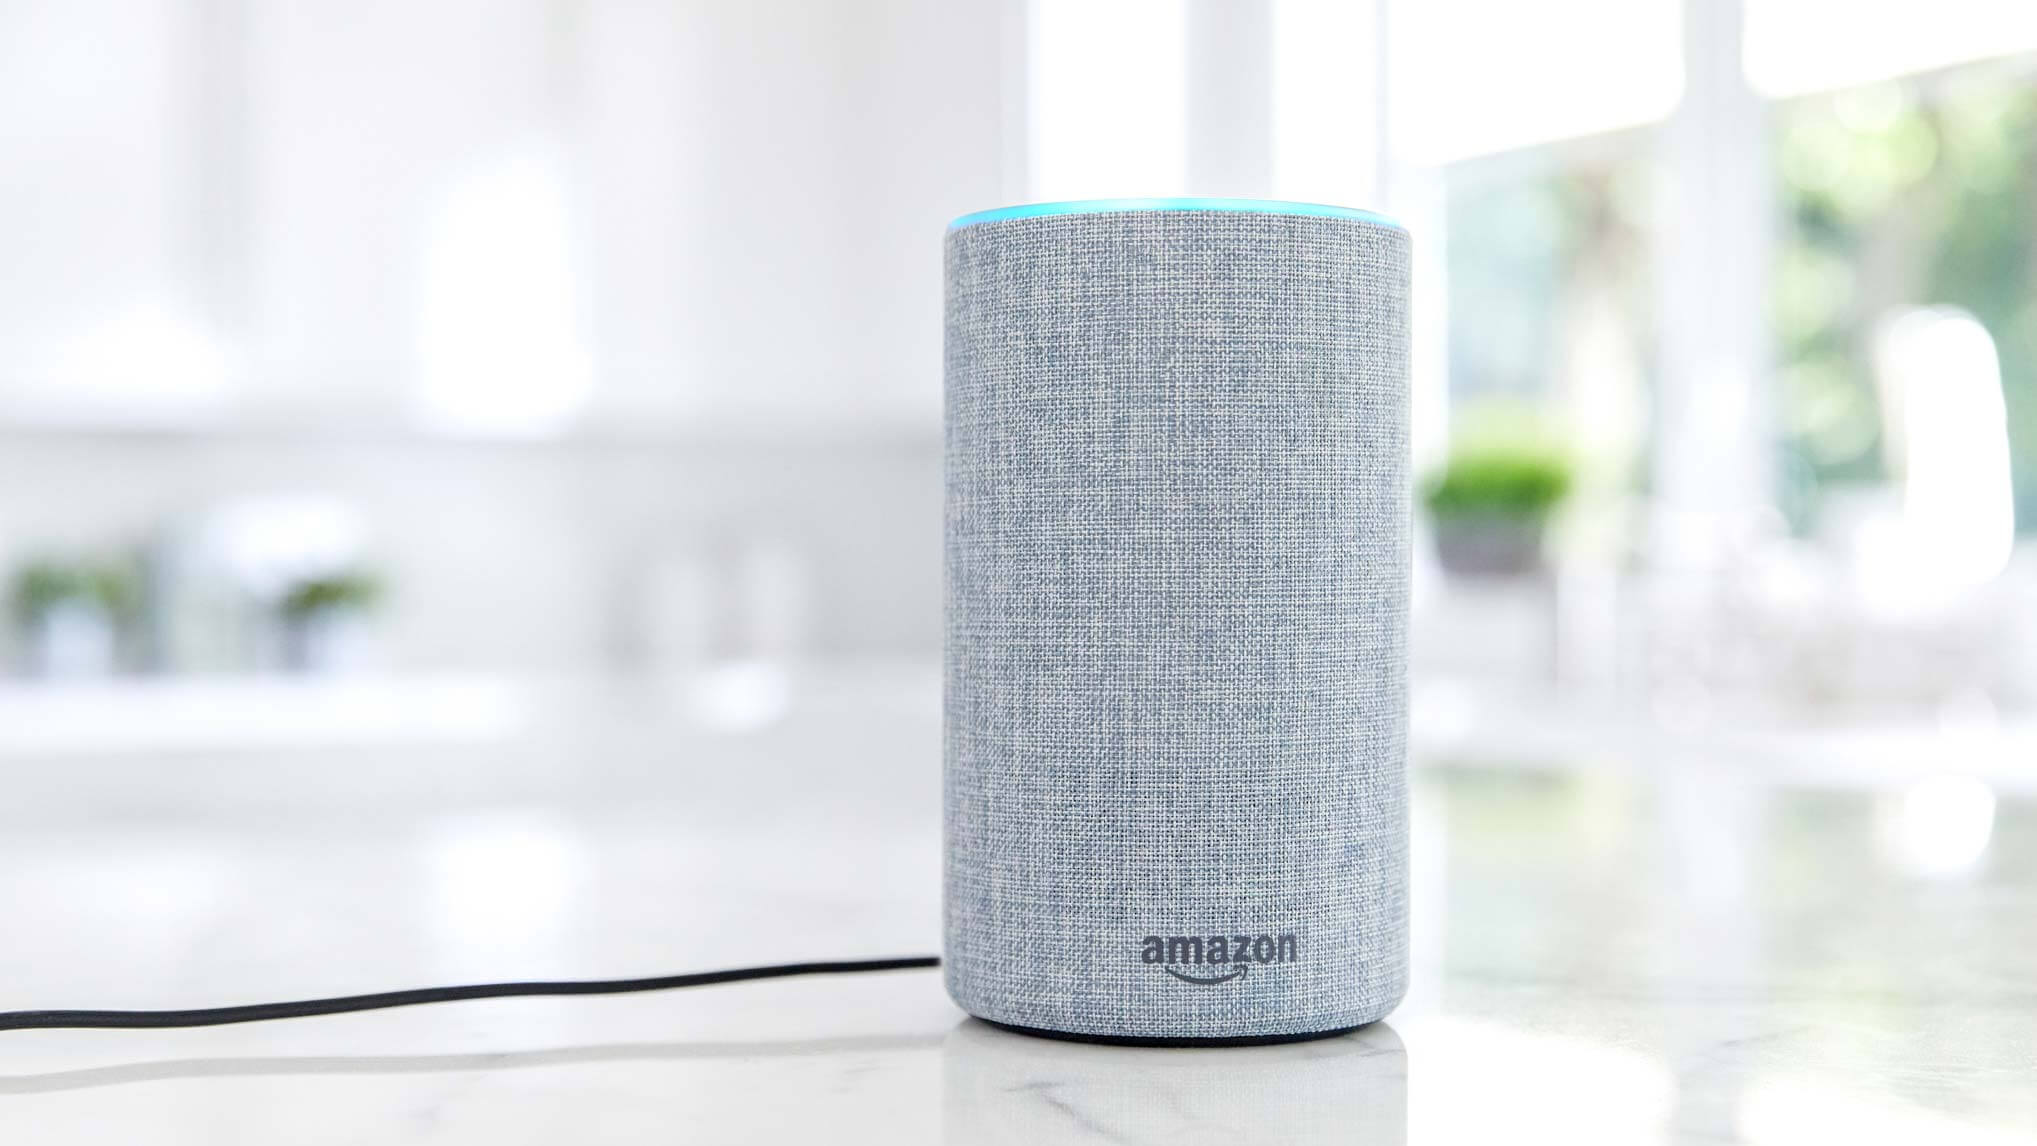 Amazon Alexa working with Total Connect 2.0